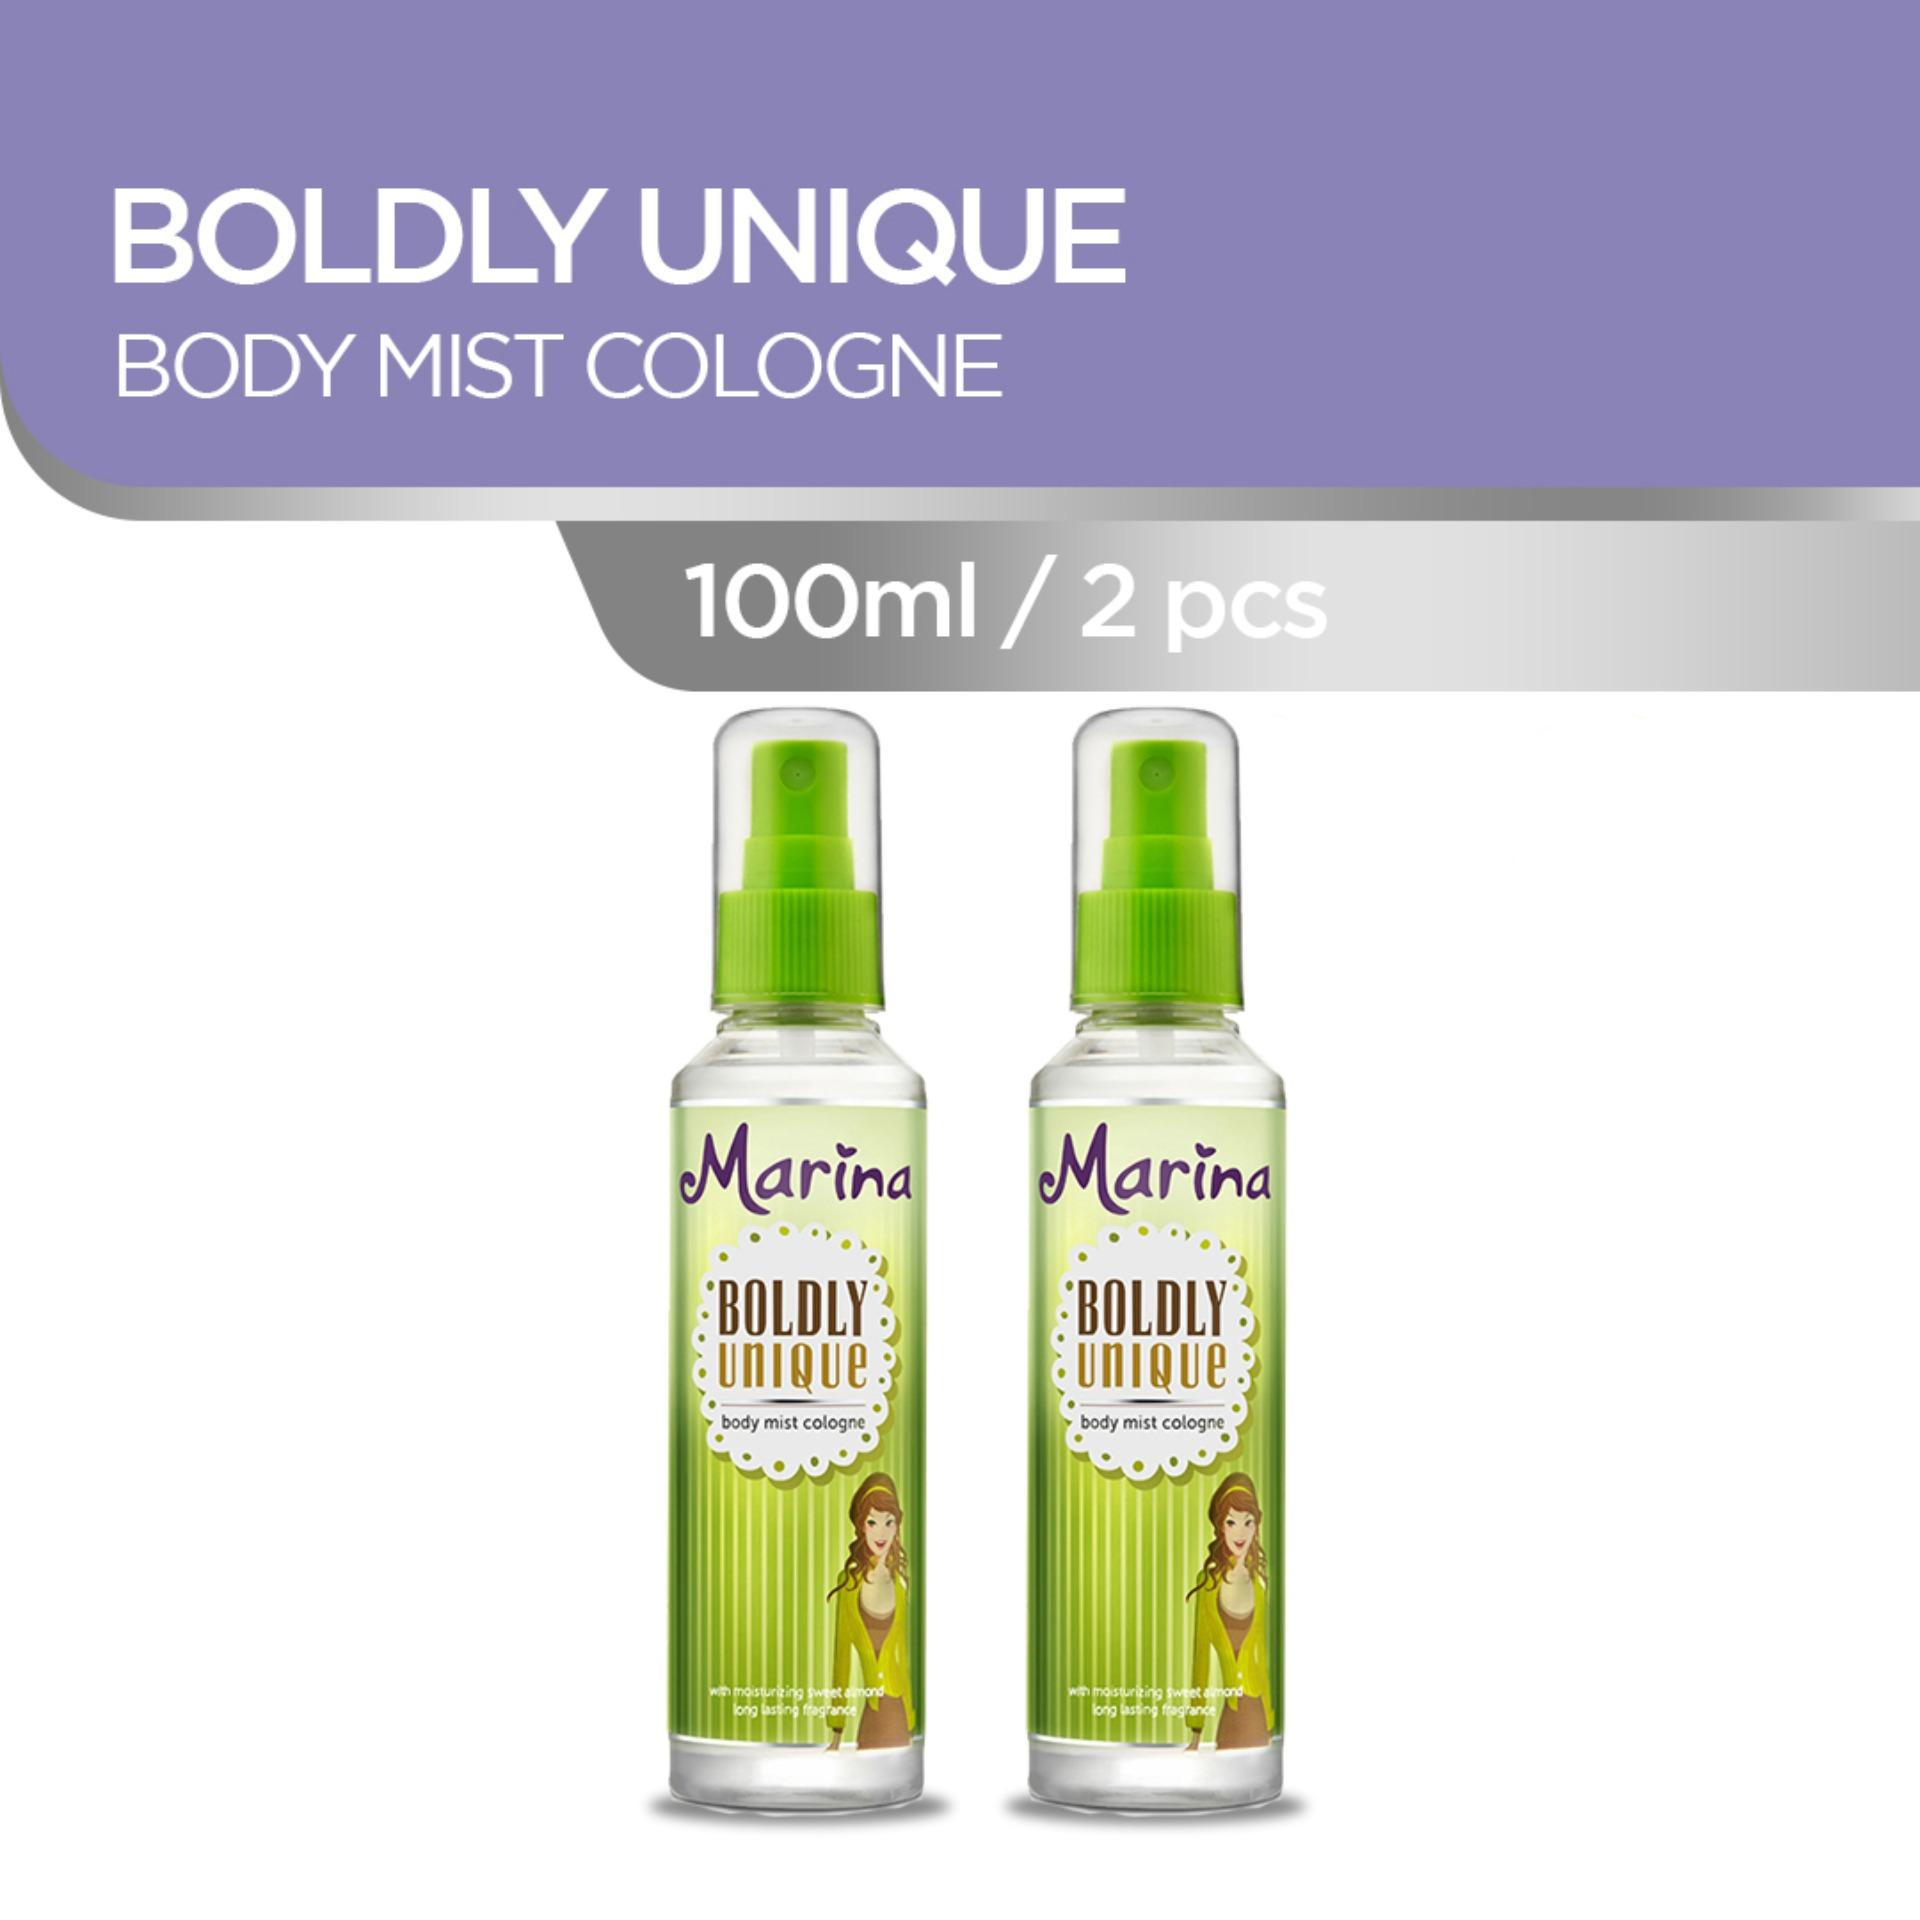 Toko Indonesia Best Buy Parfum 03 09 18 Morris Fresh Eau De 100ml Hijau Muda Marina Boldly Unique Body Mist Cologne 100 Ml 2 Pcs